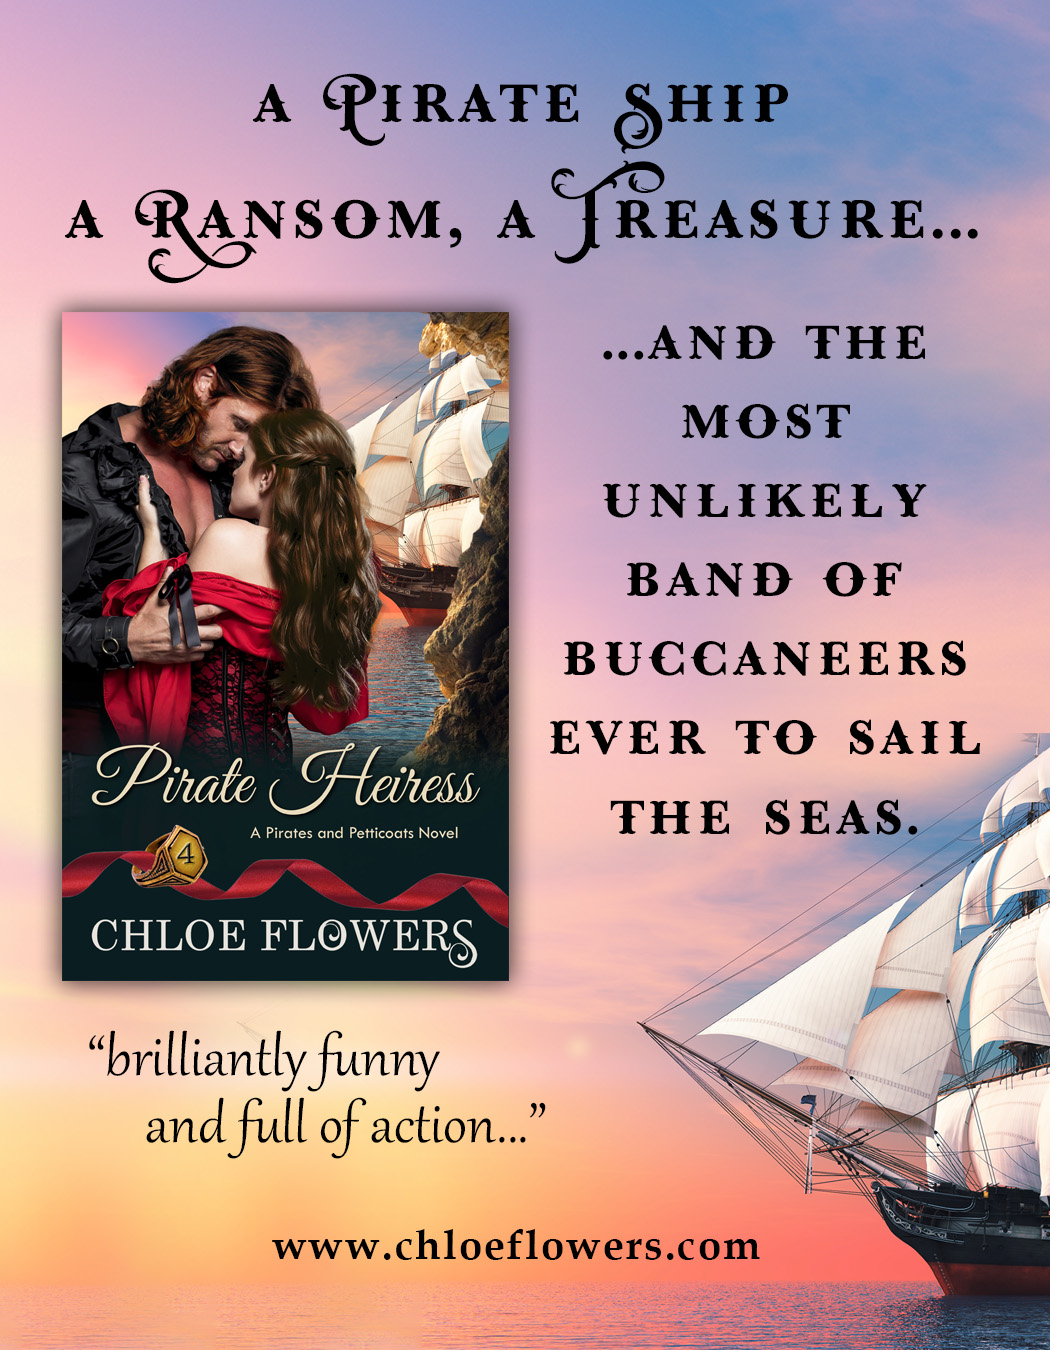 Special Deals, Free ebook, Release day SALE for Pirate Heiress